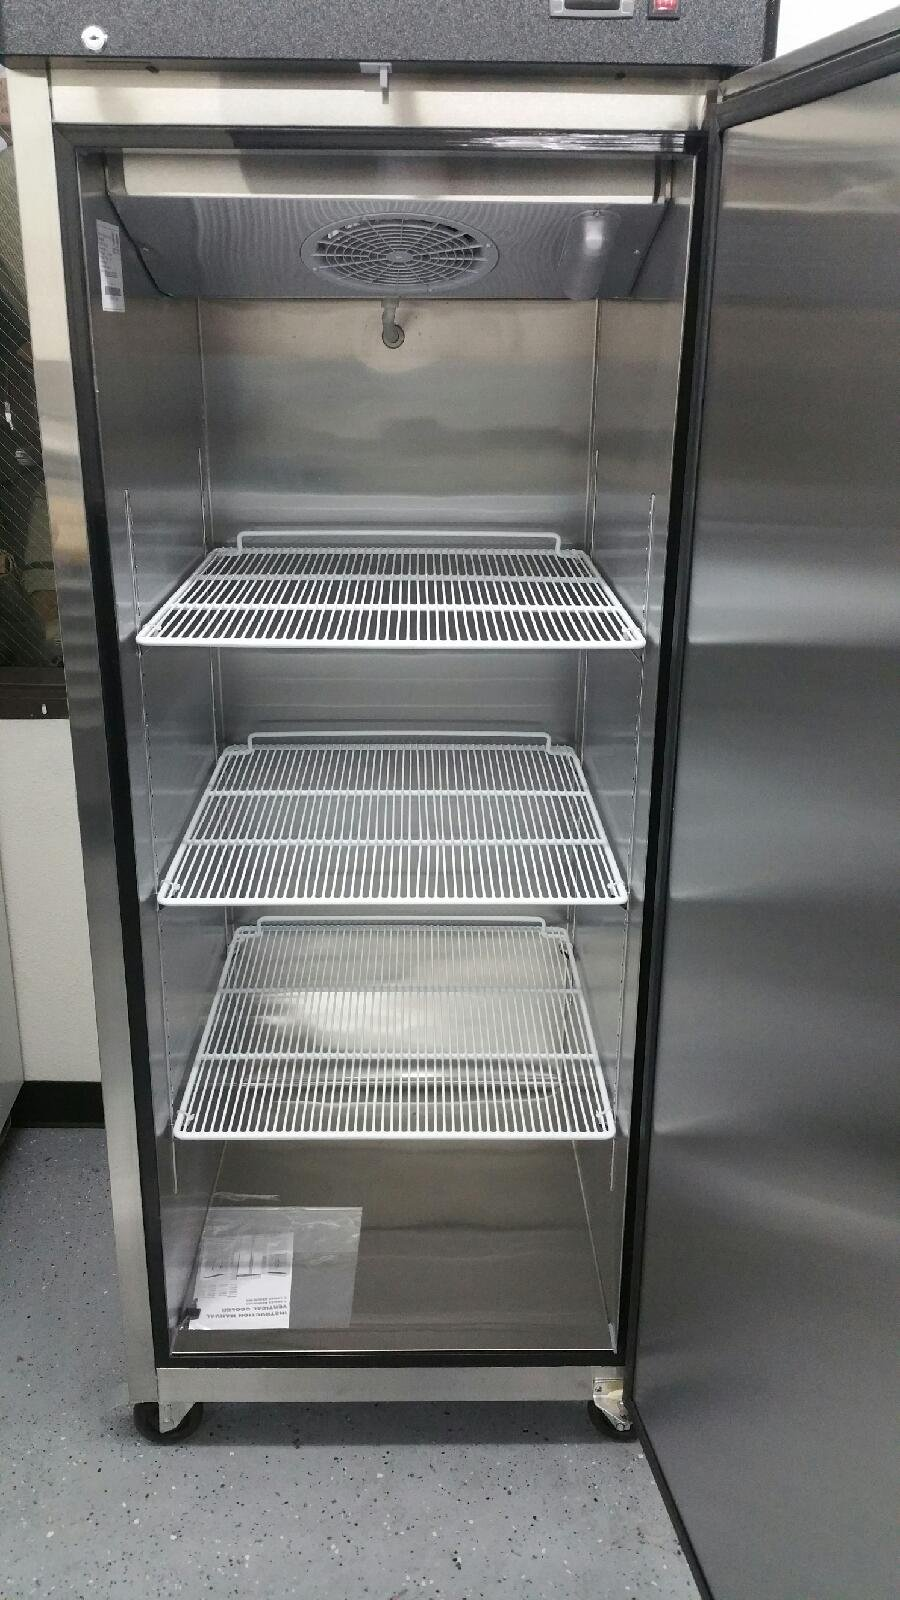 29'' Upright Stainless Steel 1 Door Commercial Freezer, 22.6 Cubic Feet, MBF-8001, for Restaurant